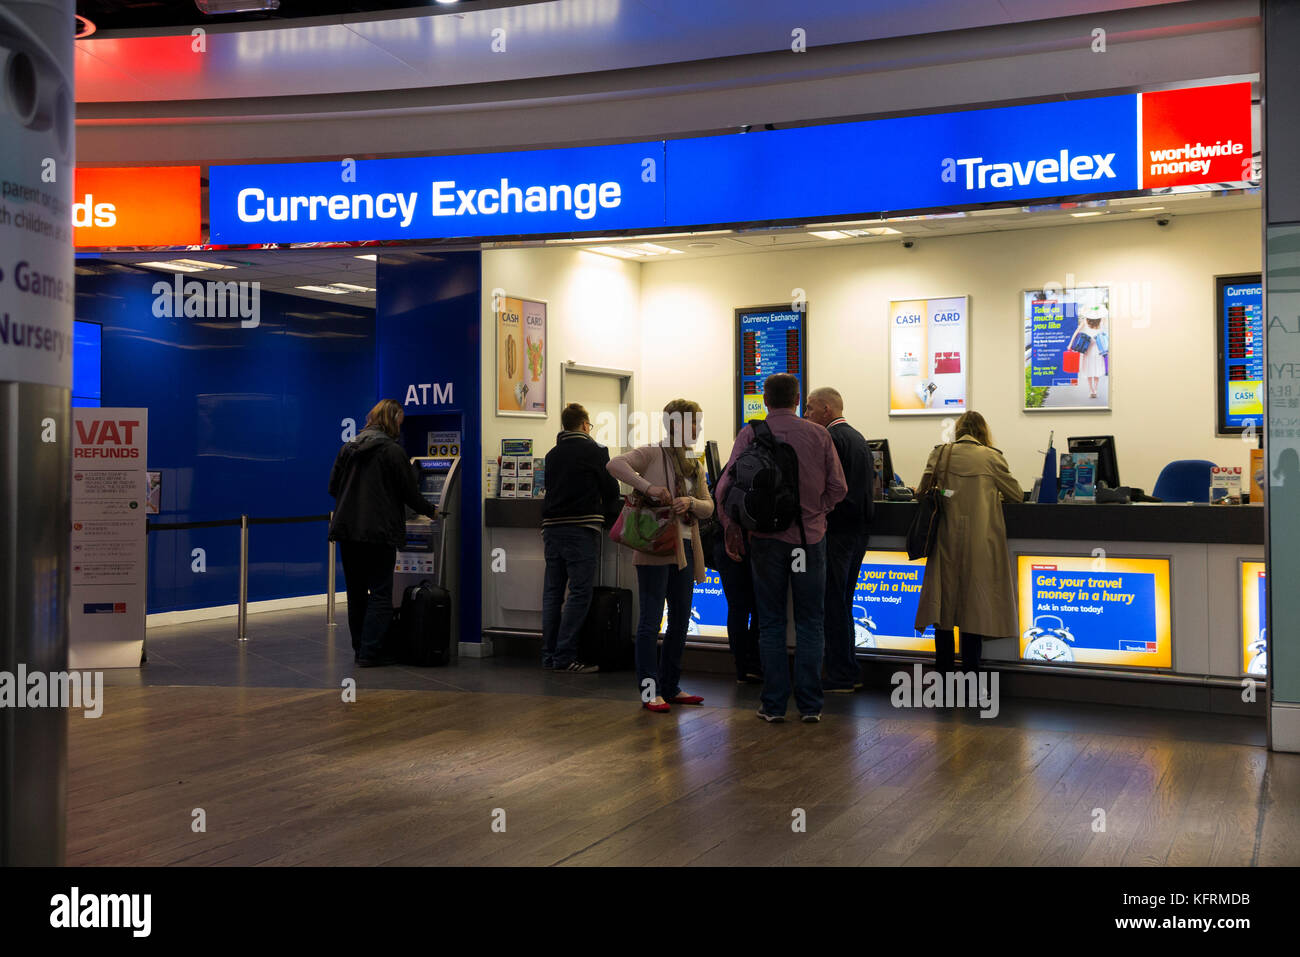 Currency Exchange Airport Stock Photos Amp Currency Exchange